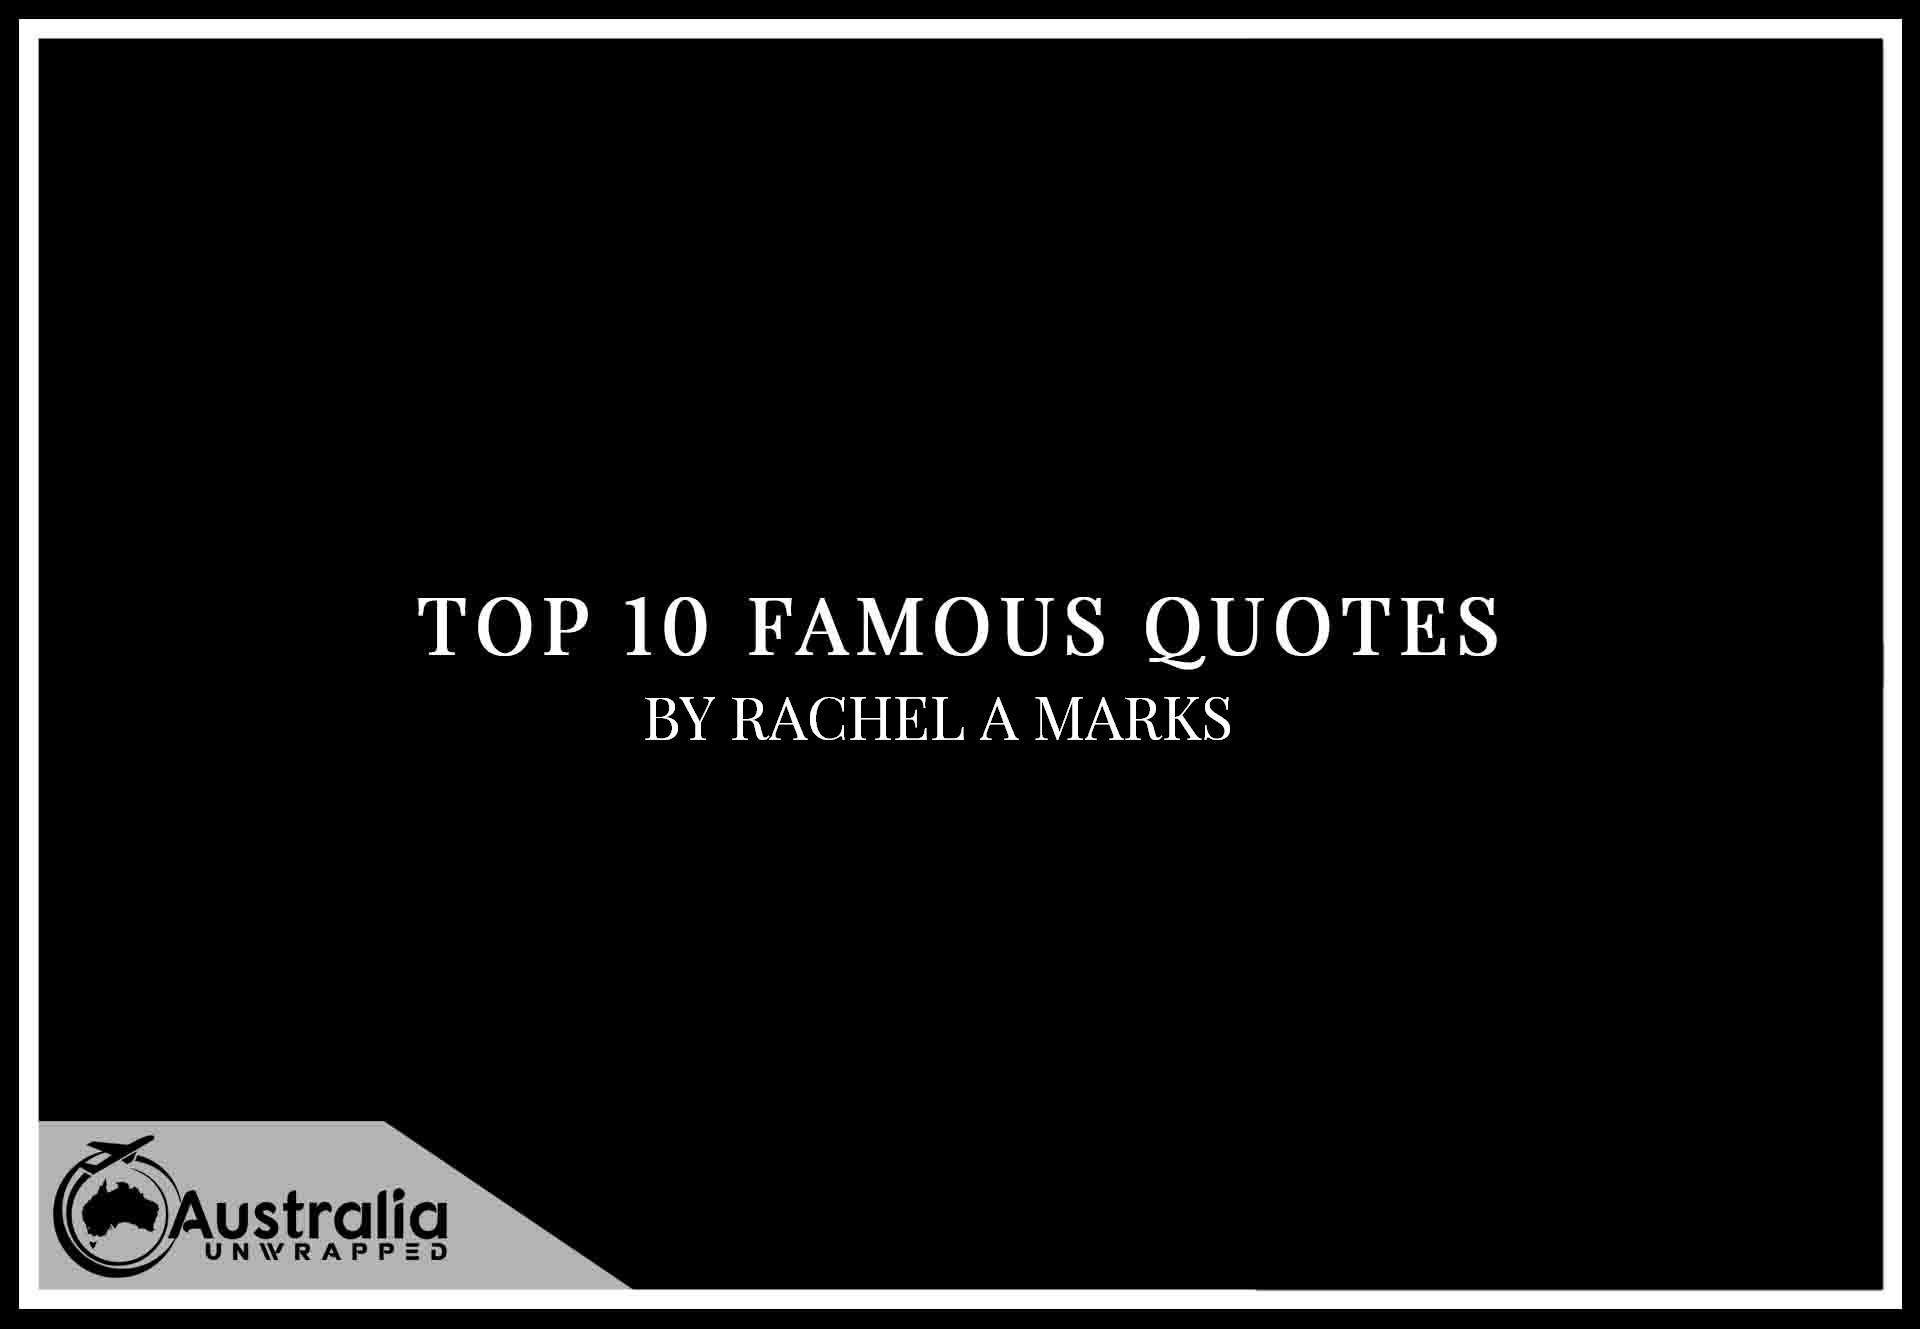 Top 10 Famous Quotes by Author Rachel A. Marks